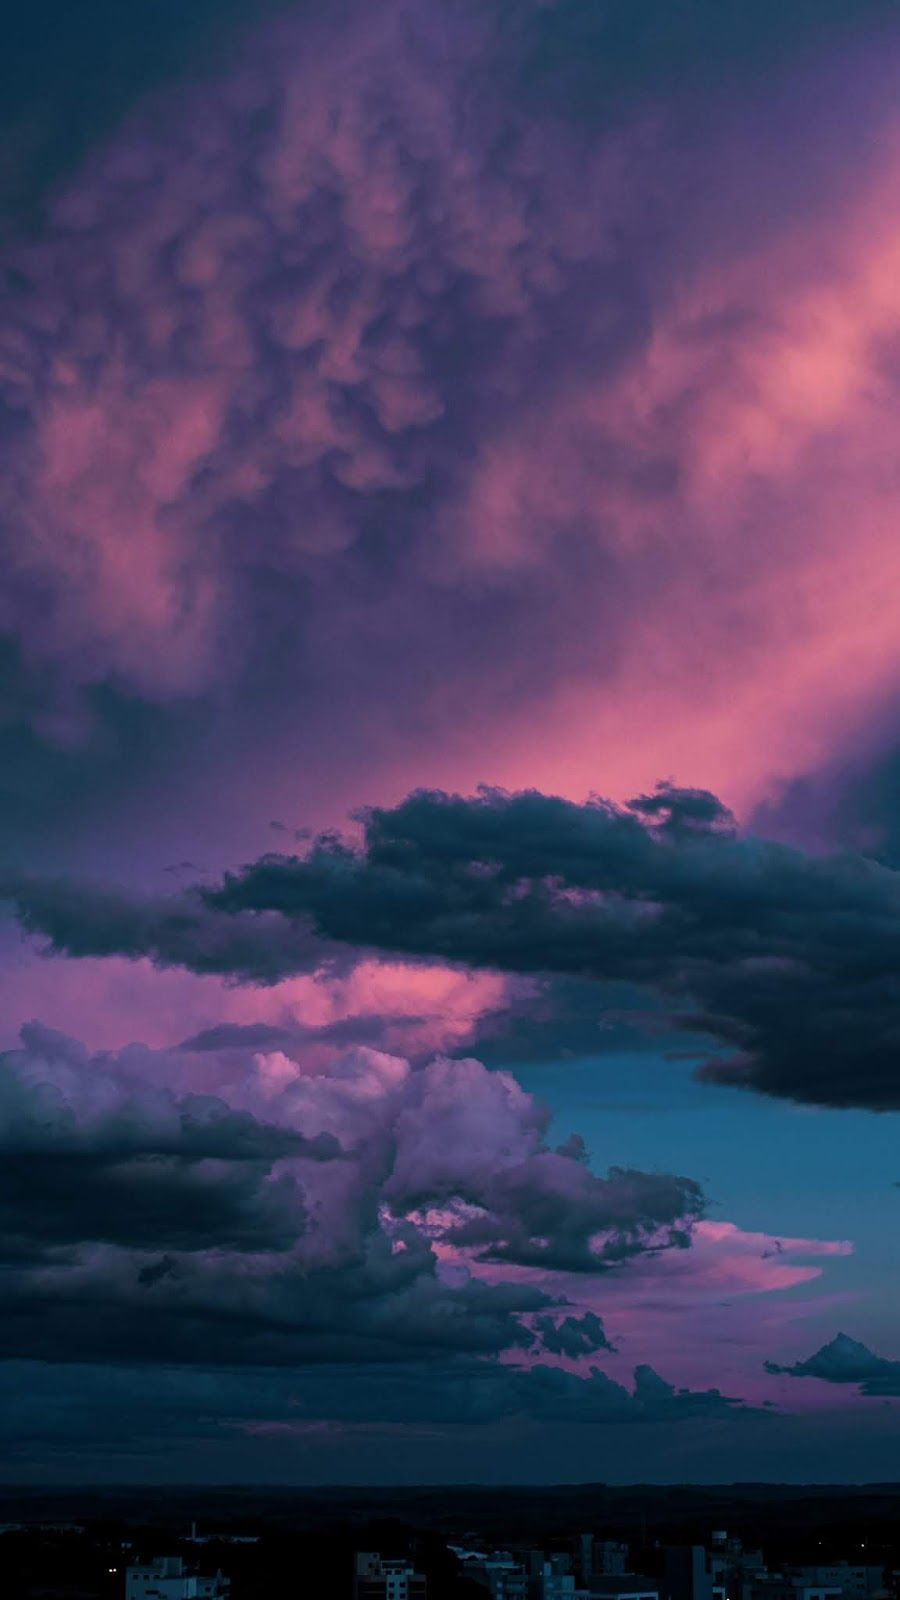 Dark Clouds In The Sky In 2020 Scenery Wallpaper Night Sky Wallpaper Dark Wallpaper